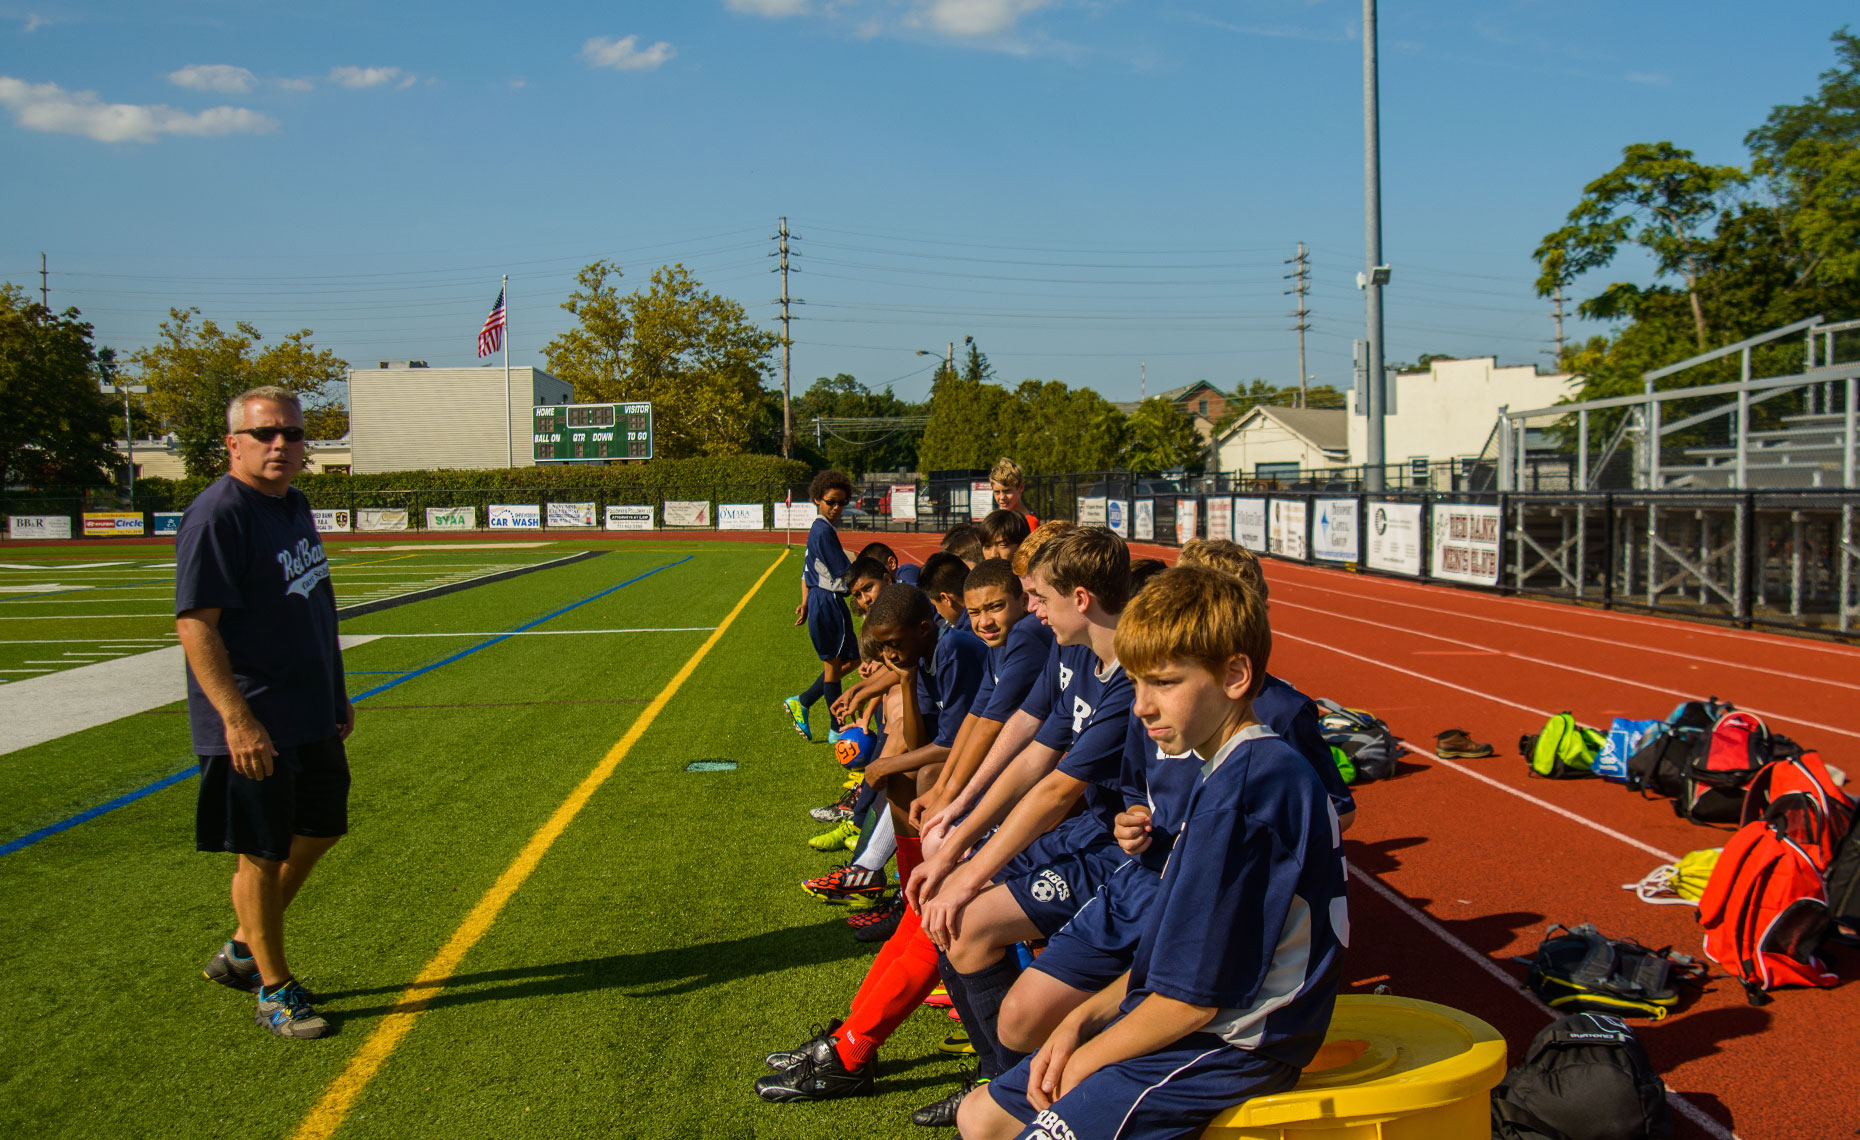 008_RBCSsoccer14.JPG